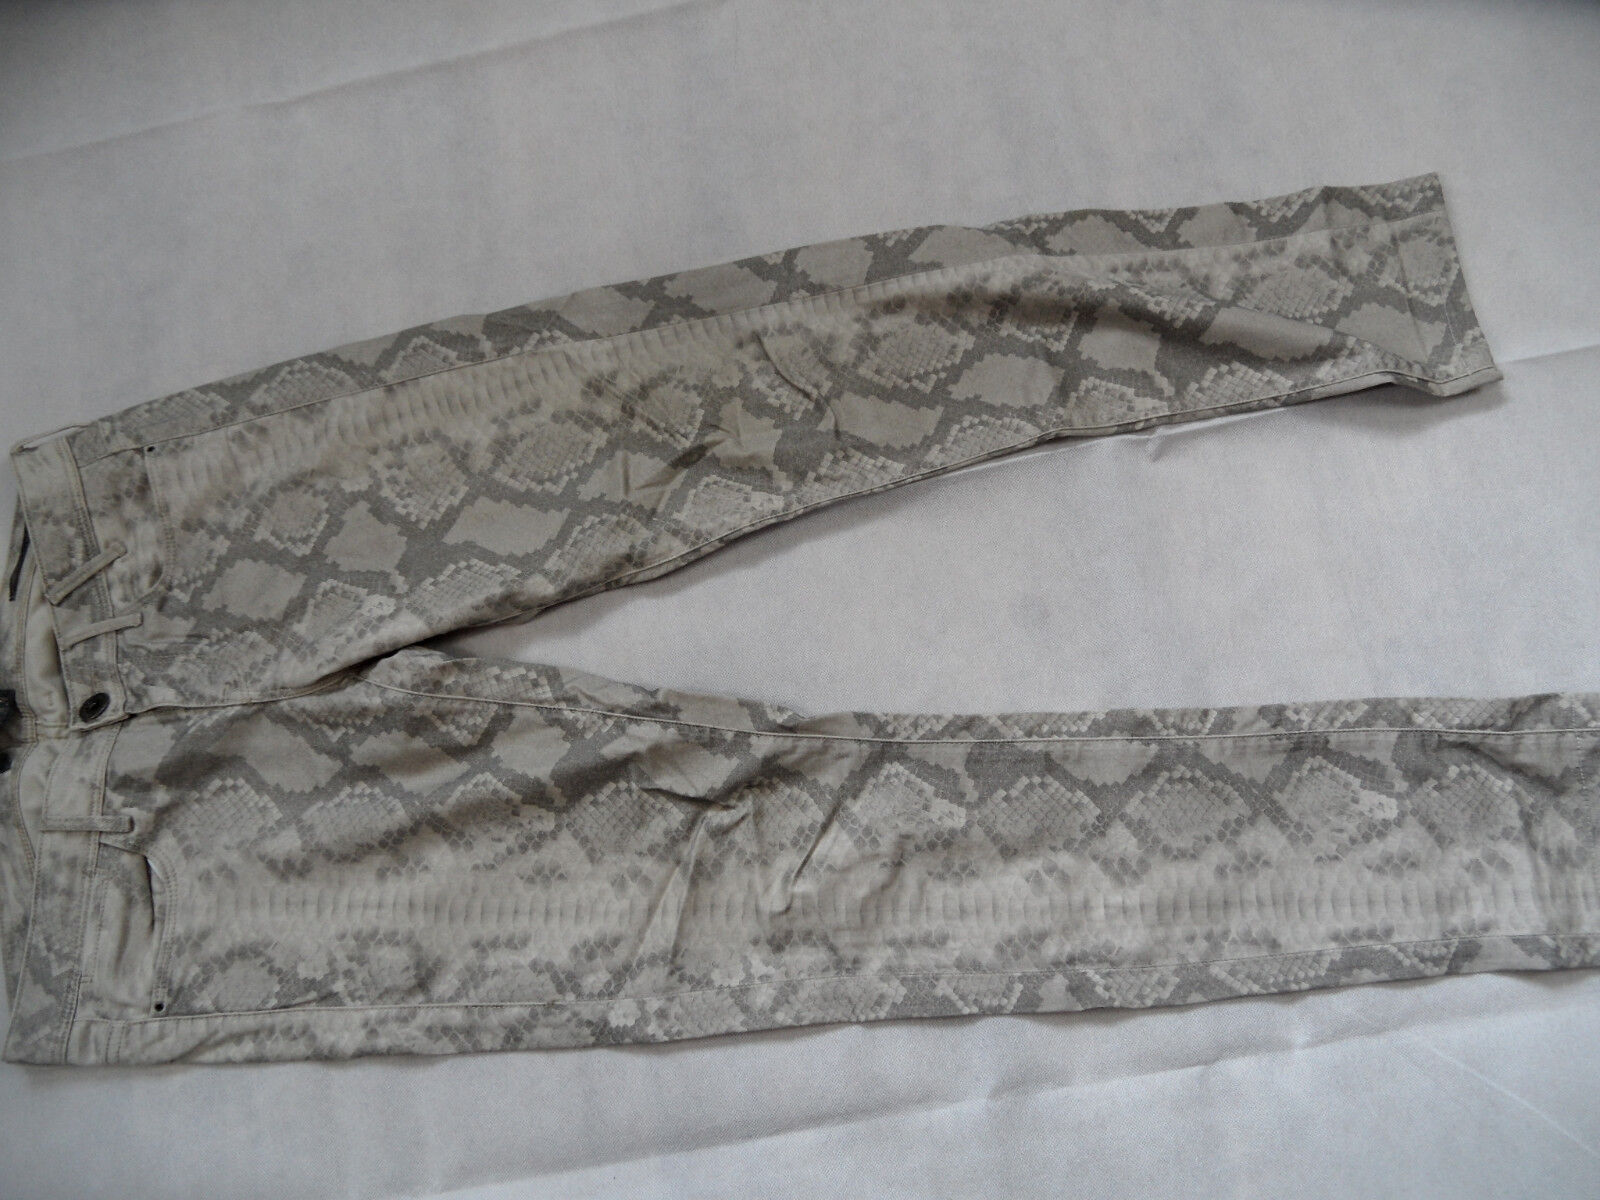 GUESS stylische Jegging skinny Jeans Snakeprint Gr. 27 TOP BI618